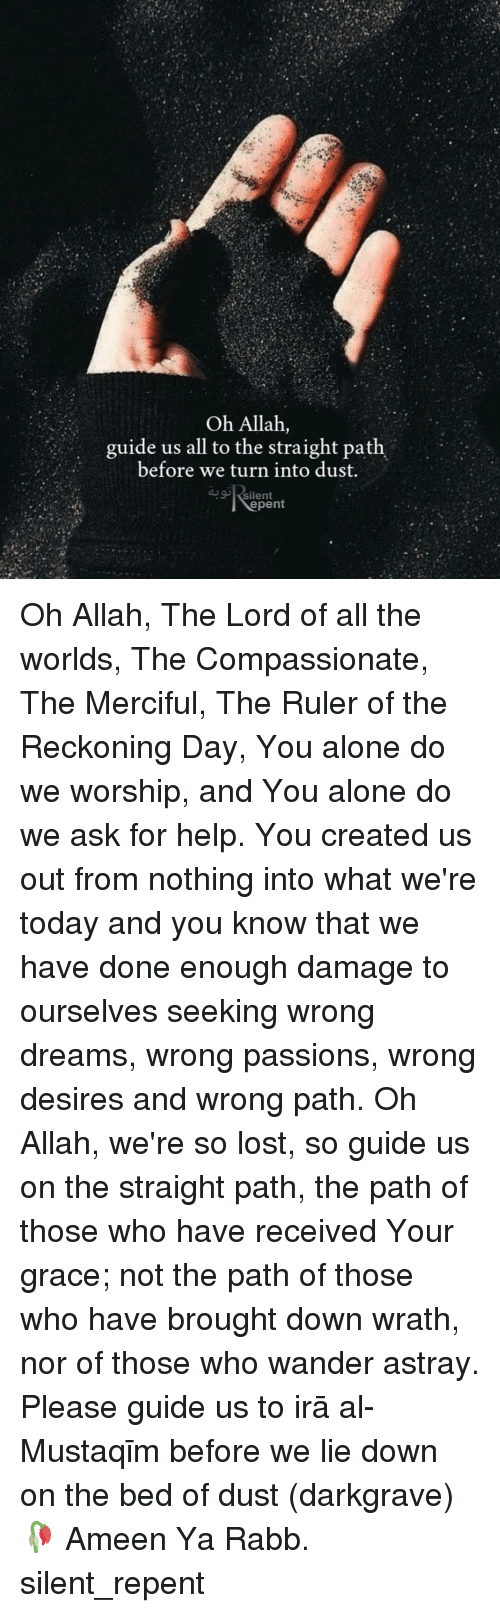 passions: Oh Allah,  guide us all to the straight path  before we turn into dust.  silent  epent Oh Allah, The Lord of all the worlds, The Compassionate, The Merciful, The Ruler of the Reckoning Day, You alone do we worship, and You alone do we ask for help. You created us out from nothing into what we're today and you know that we have done enough damage to ourselves seeking wrong dreams, wrong passions, wrong desires and wrong path. Oh Allah, we're so lost, so guide us on the straight path, the path of those who have received Your grace; not the path of those who have brought down wrath, nor of those who wander astray. Please guide us to Ṣirāṭ al-Mustaqīm before we lie down on the bed of dust (darkgrave)🥀 Ameen Ya Rabb. silent_repent